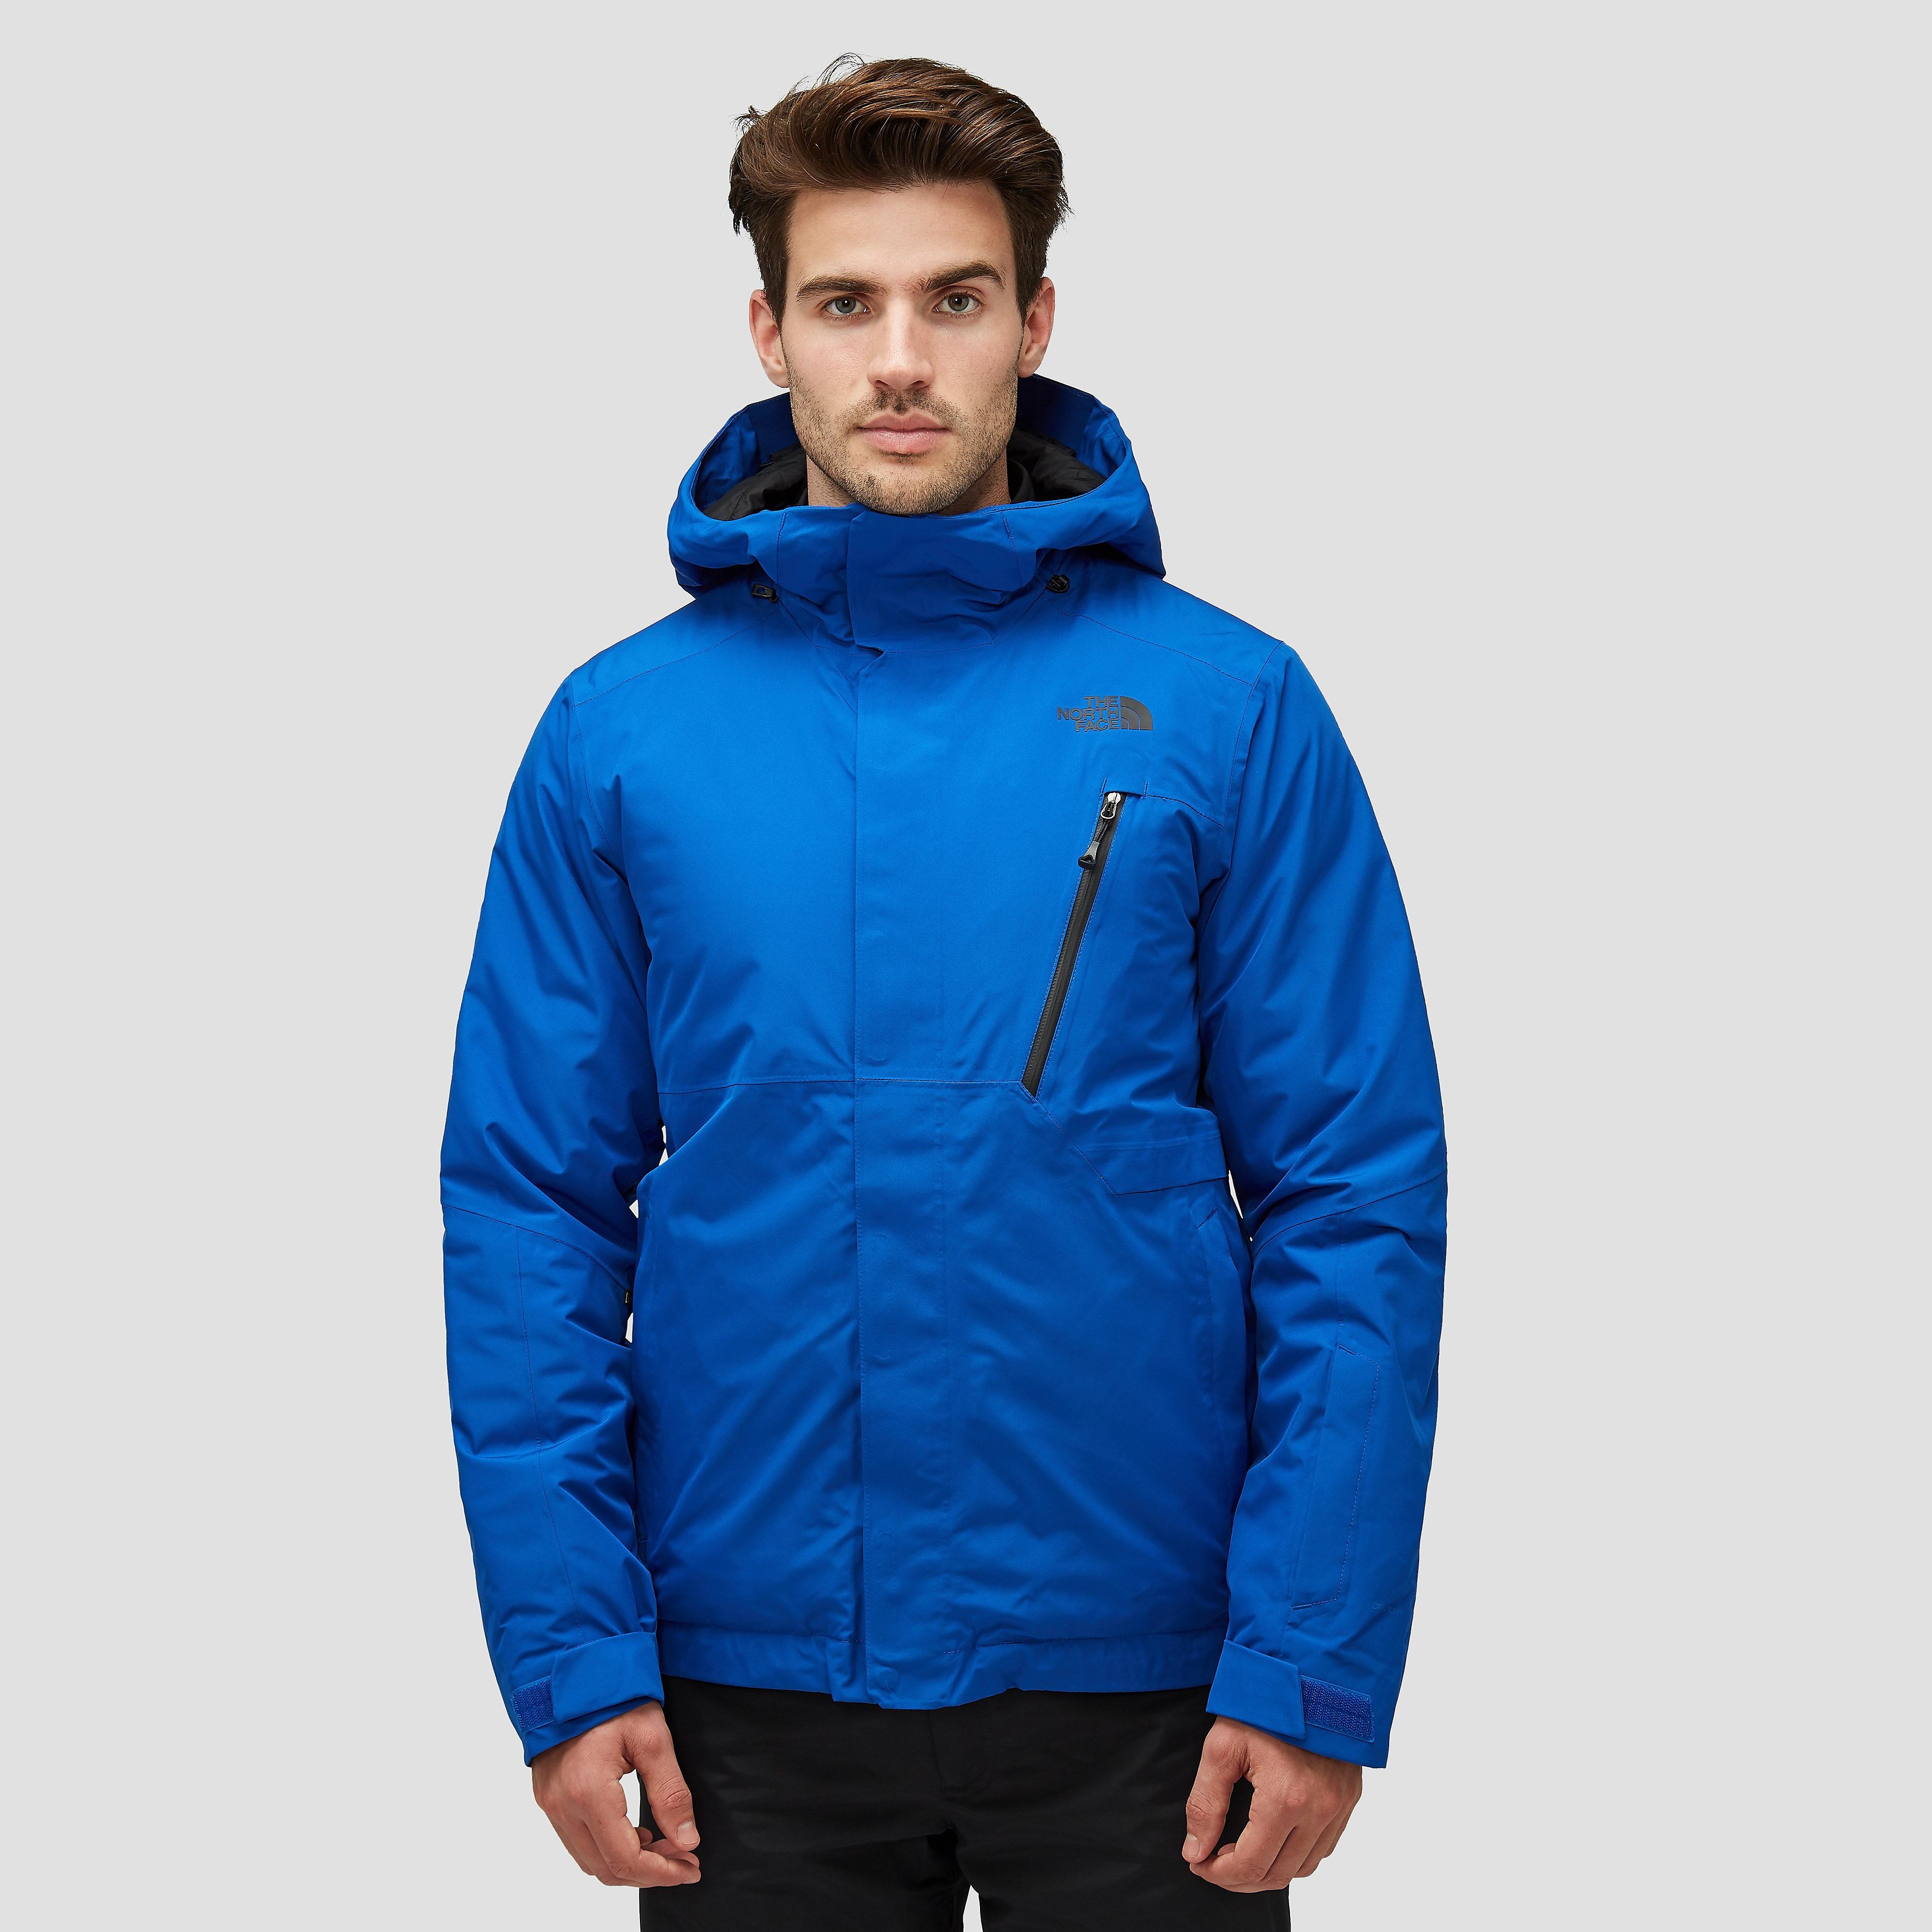 THE NORTH FACE DESCENDIT OUTDOOR SKI - OUTDOOR JAS BLAUW HEREN